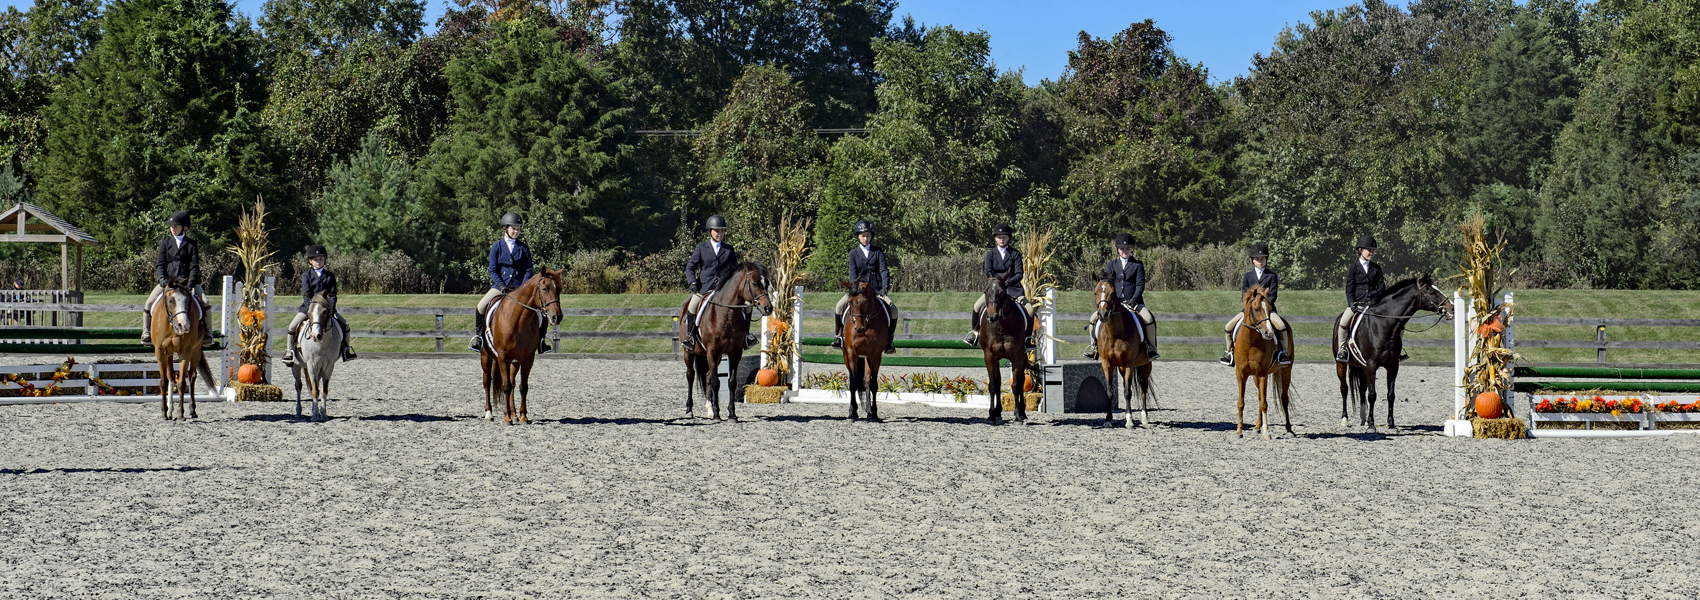 A long row of mounted horses stands in a riding ring